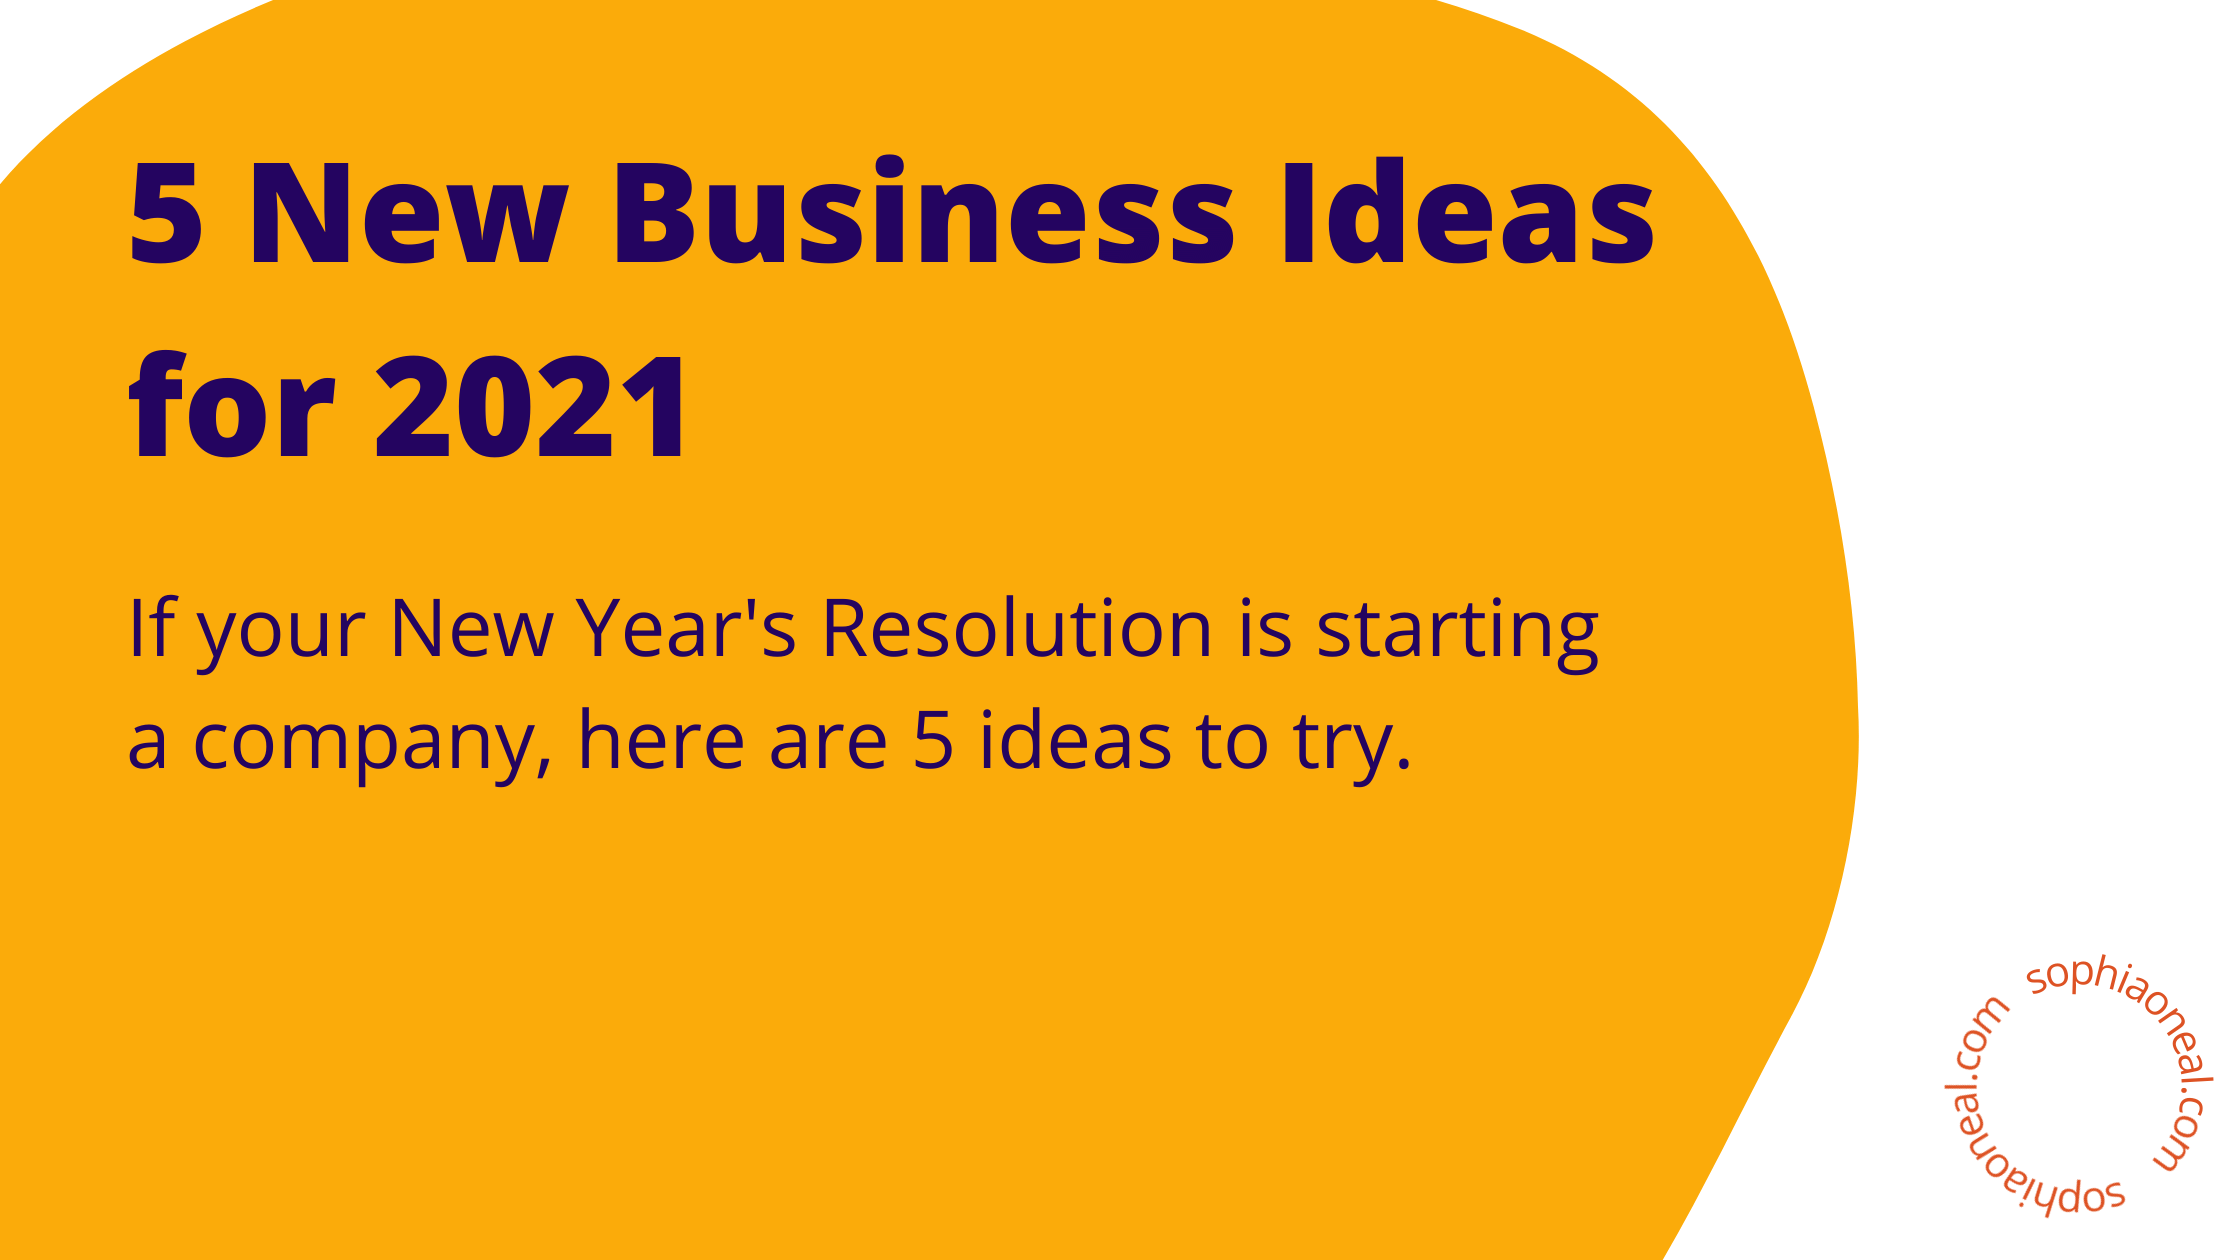 Here are 5 new business ideas to start - and most can be started from home.